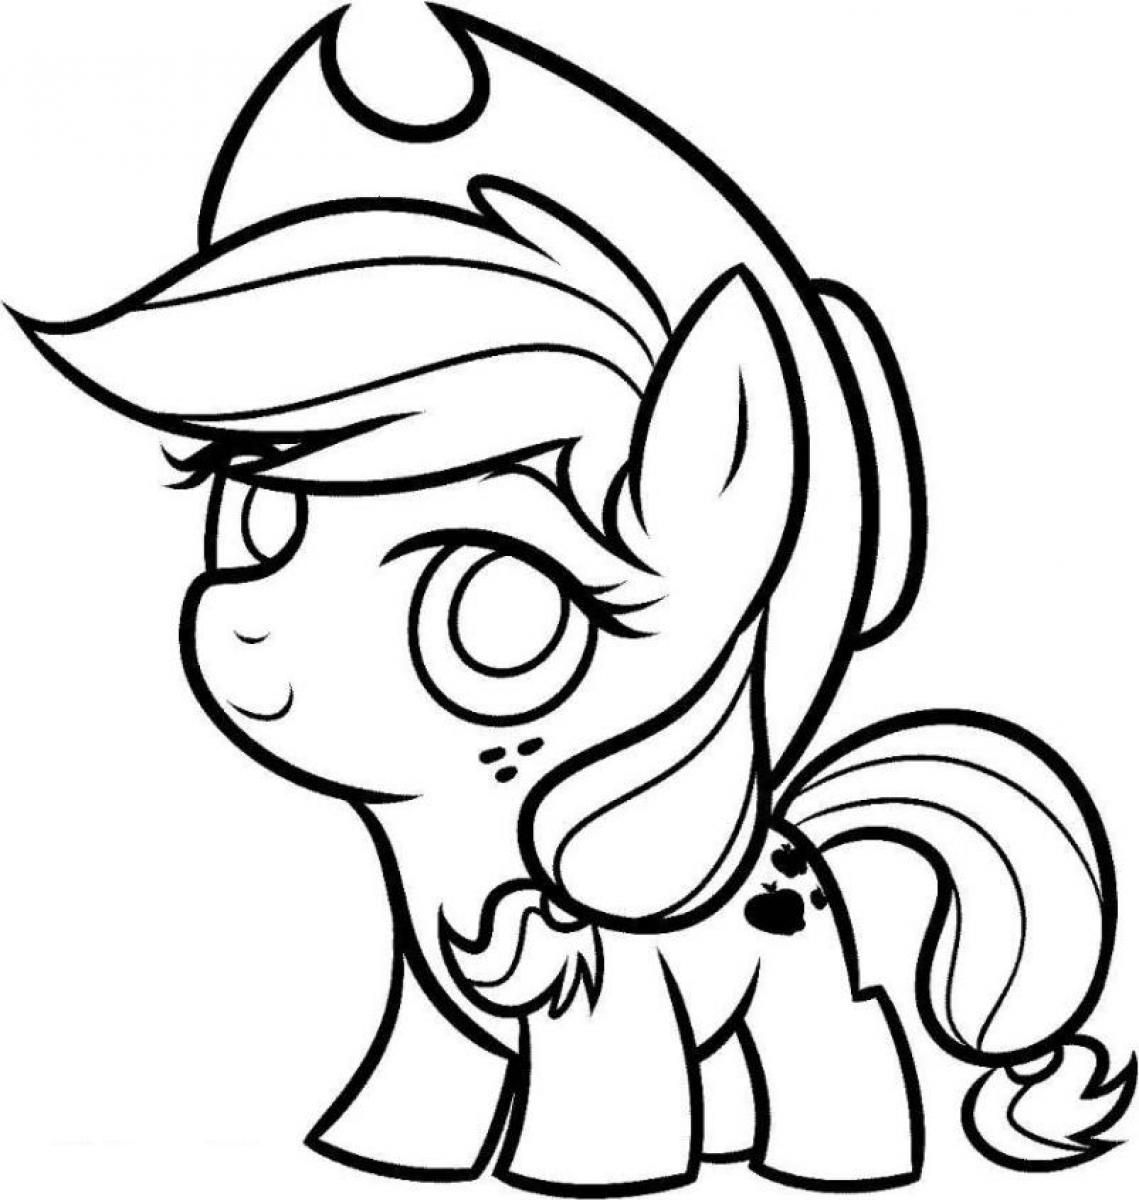 Baby Applejack My Little Pony Coloring Cute Coloring Pages My Little Pony Drawing